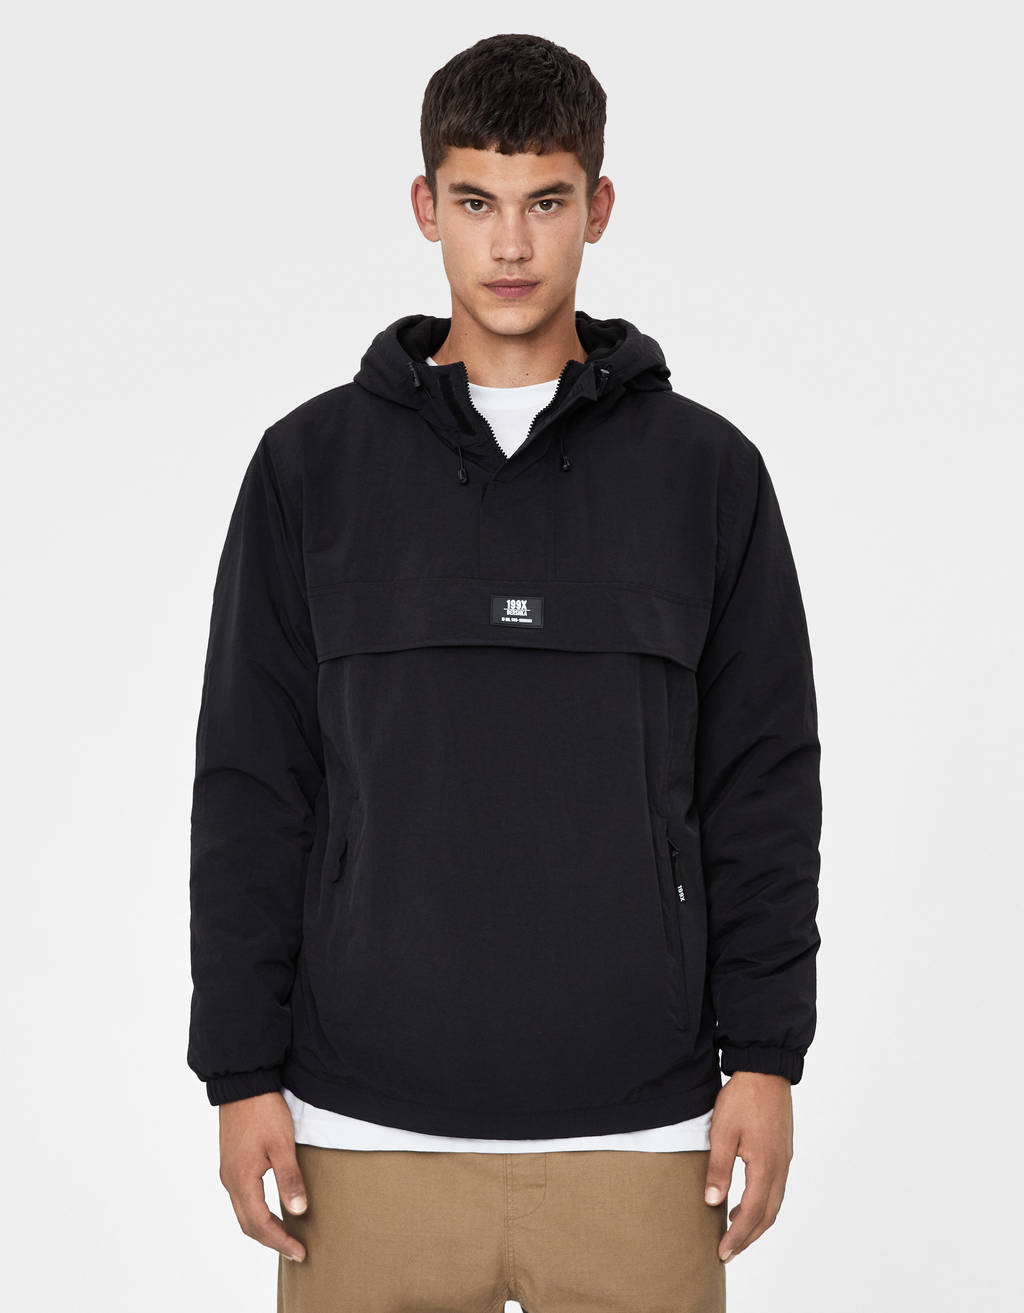 e2b93211b Jackets - COLLECTION - MEN - Bershka United States